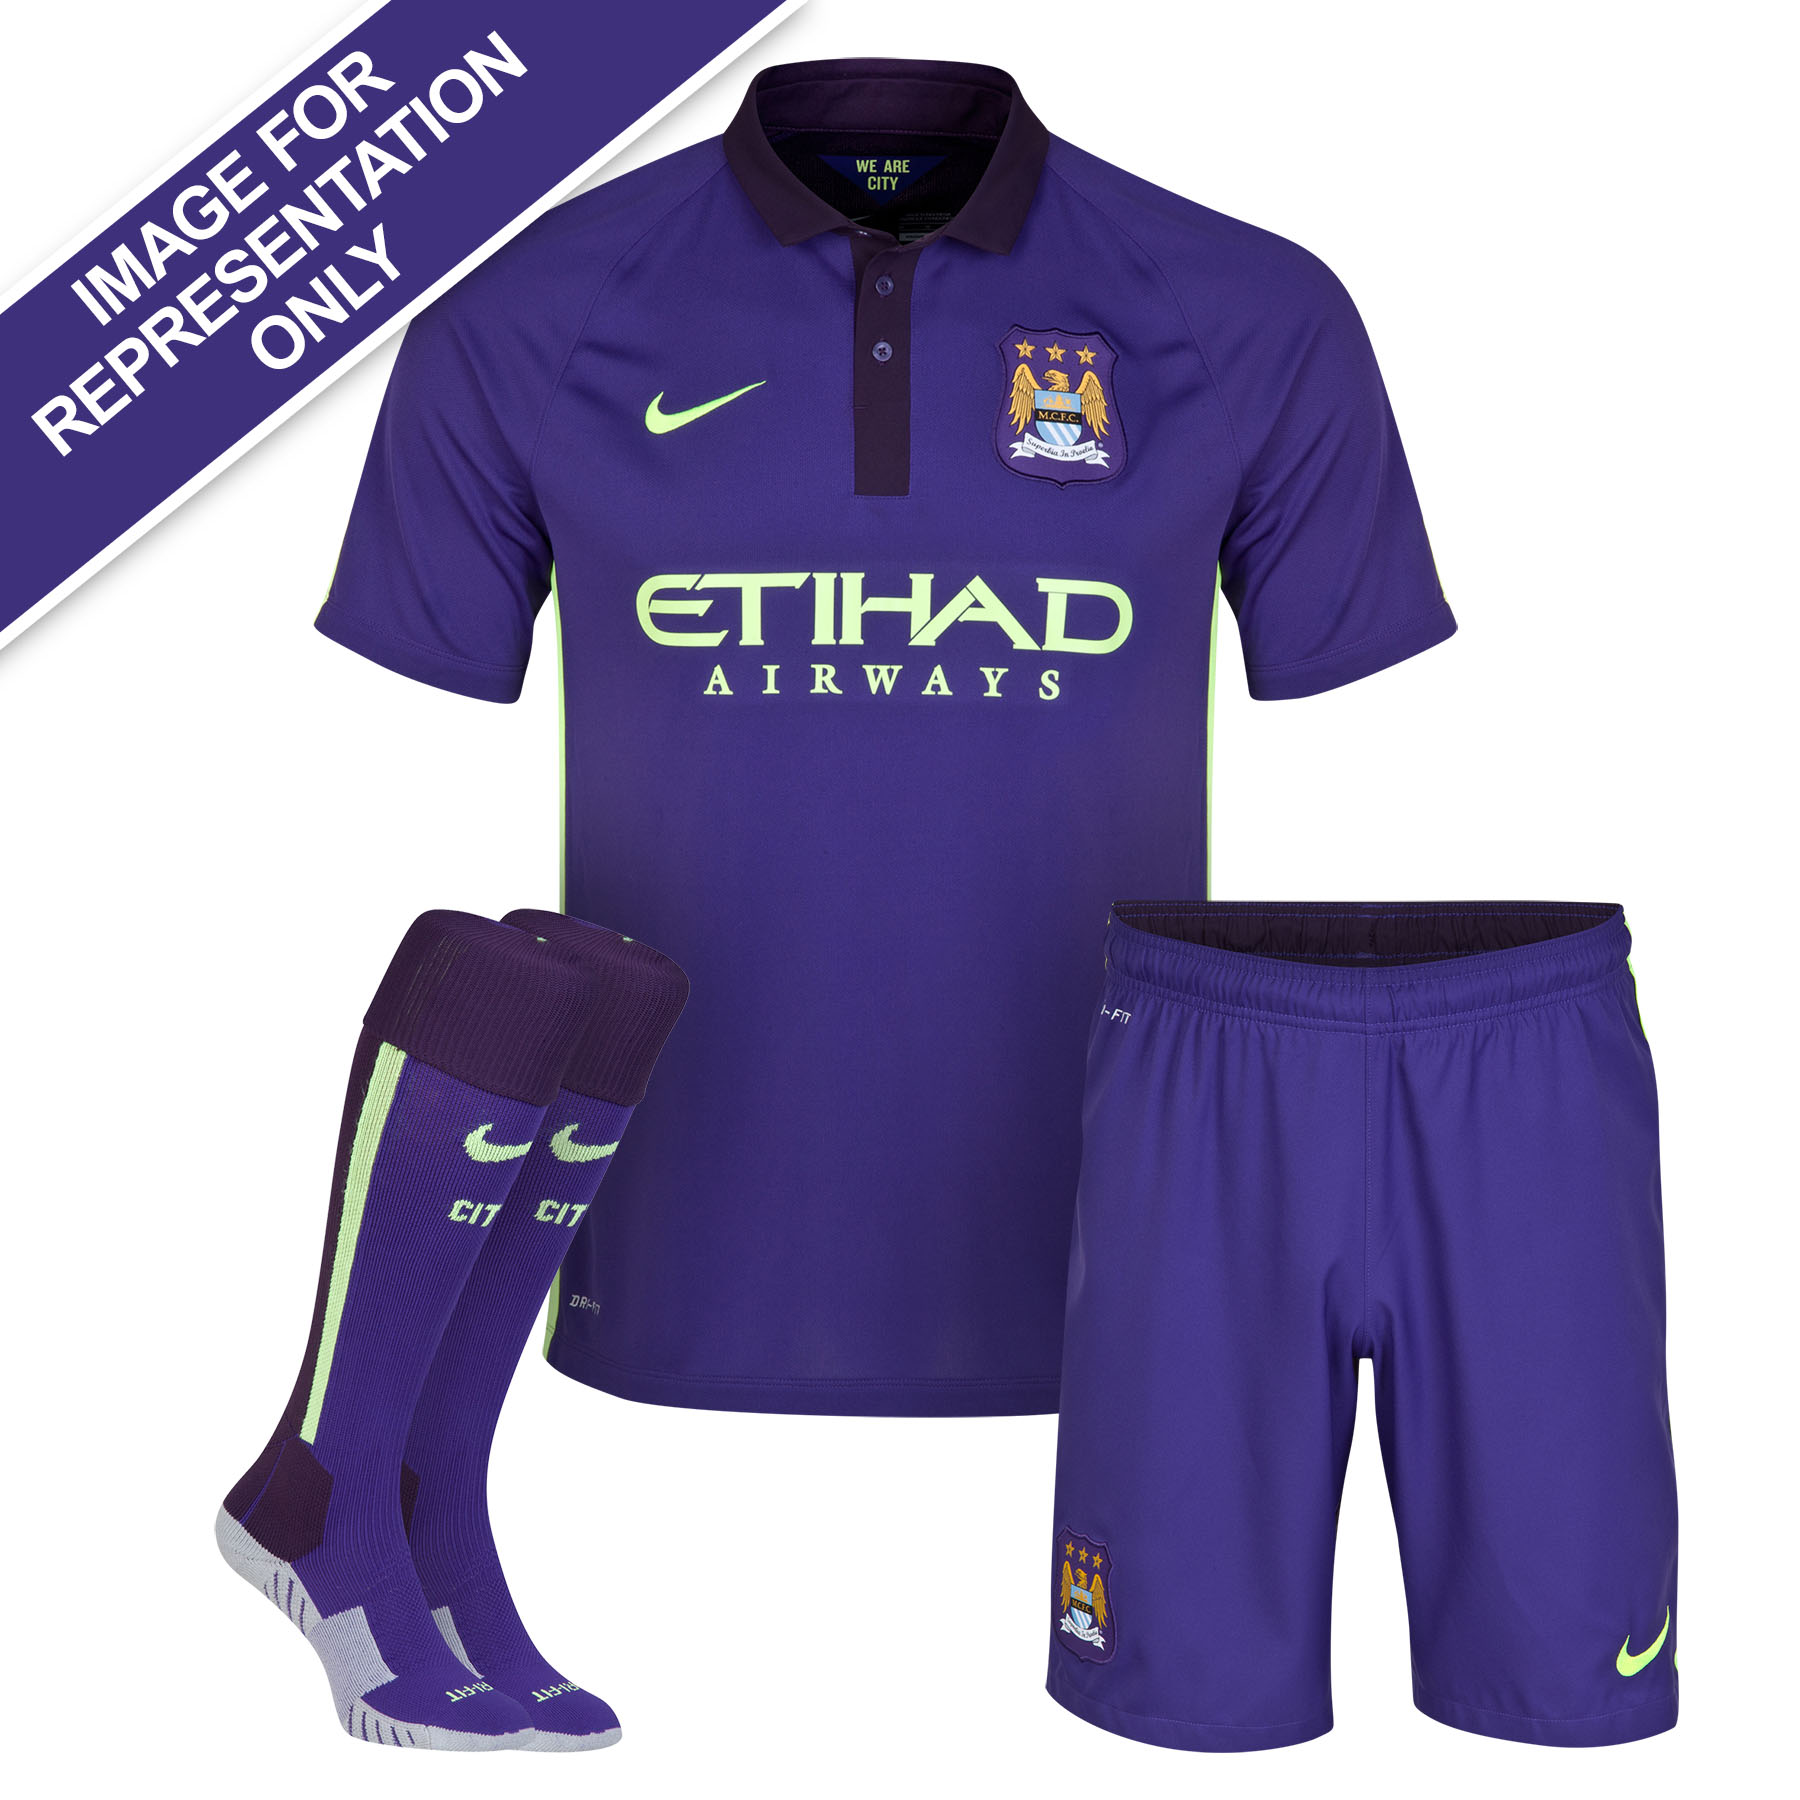 Manchester City Cup Away Kit 2014/15 - Little Boys Purple